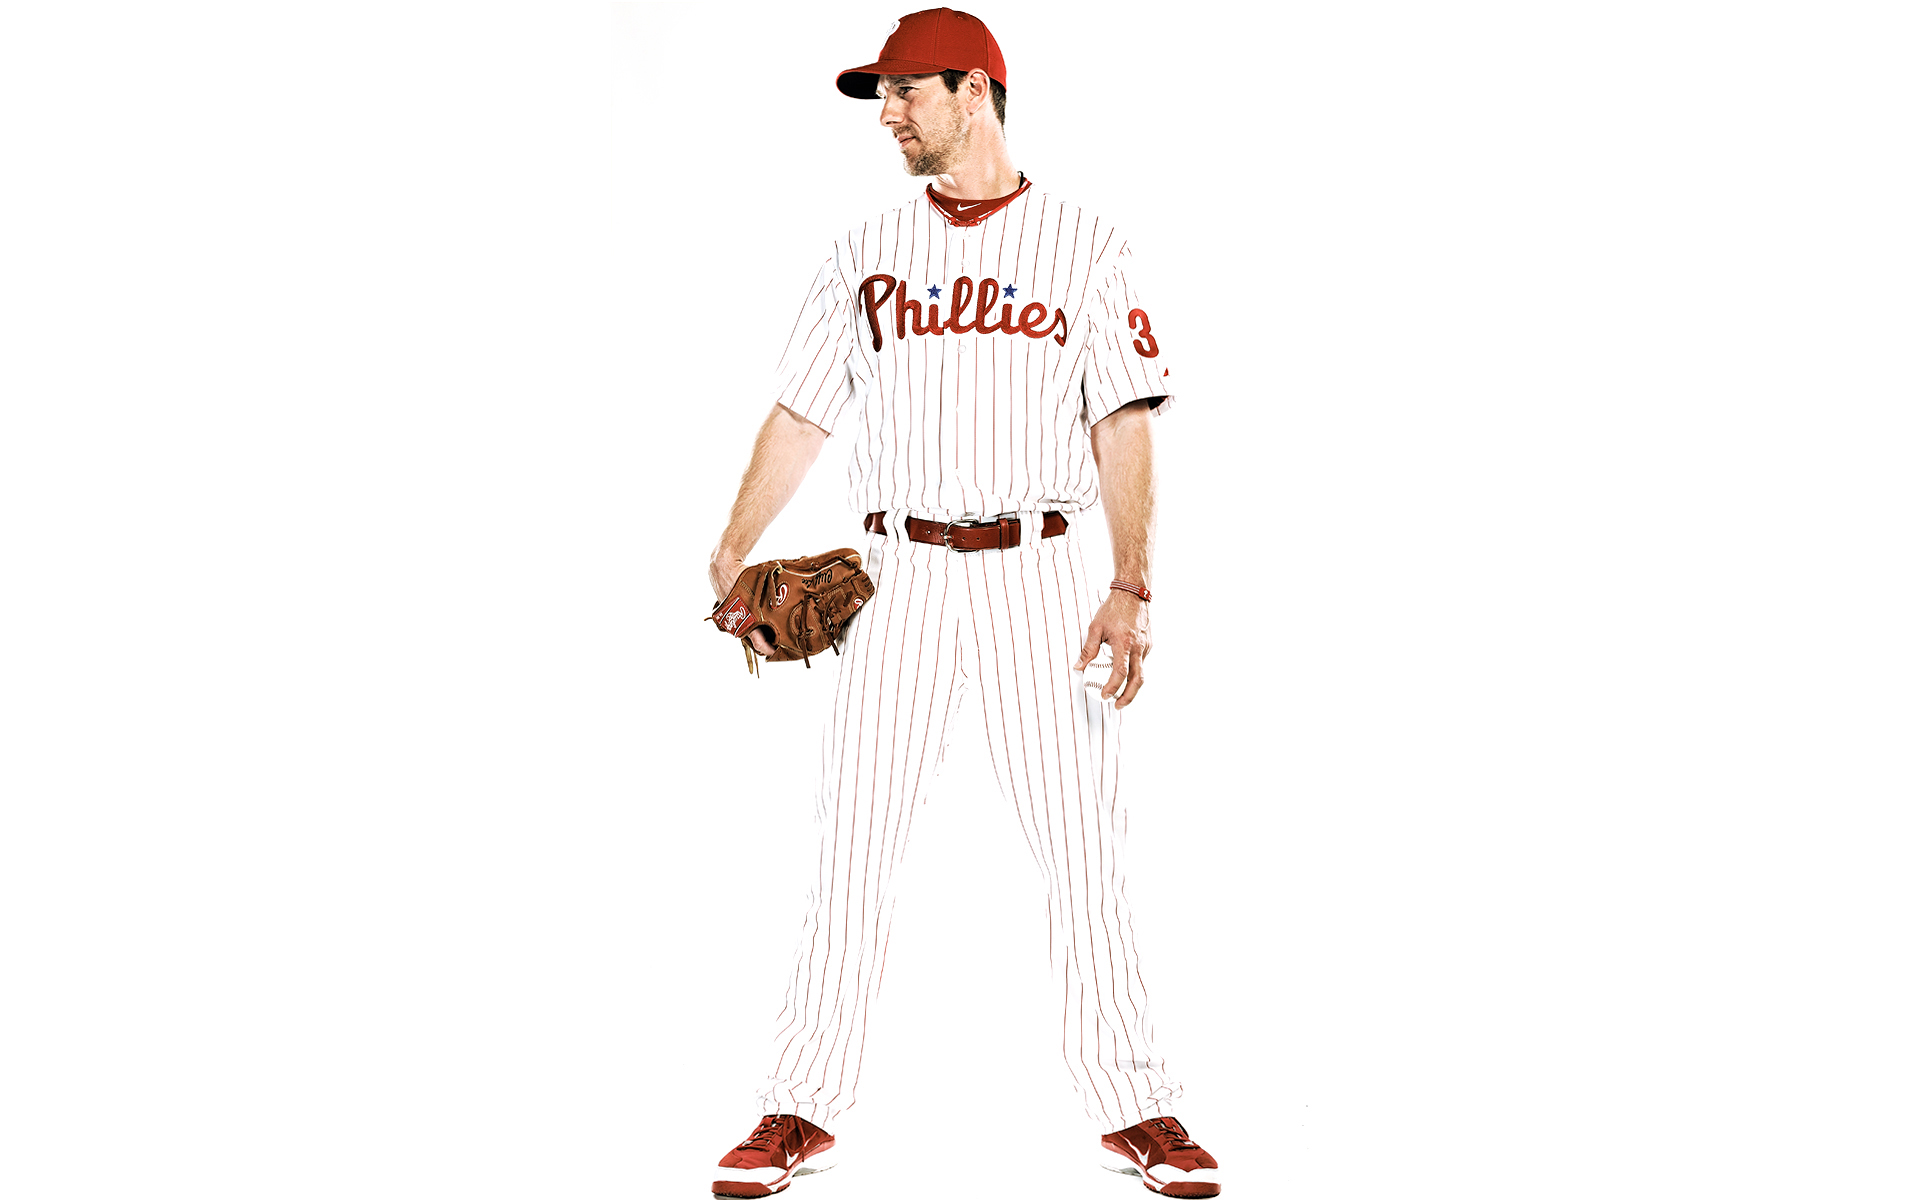 Cliff Lee by Sports photographer Blair Bunting